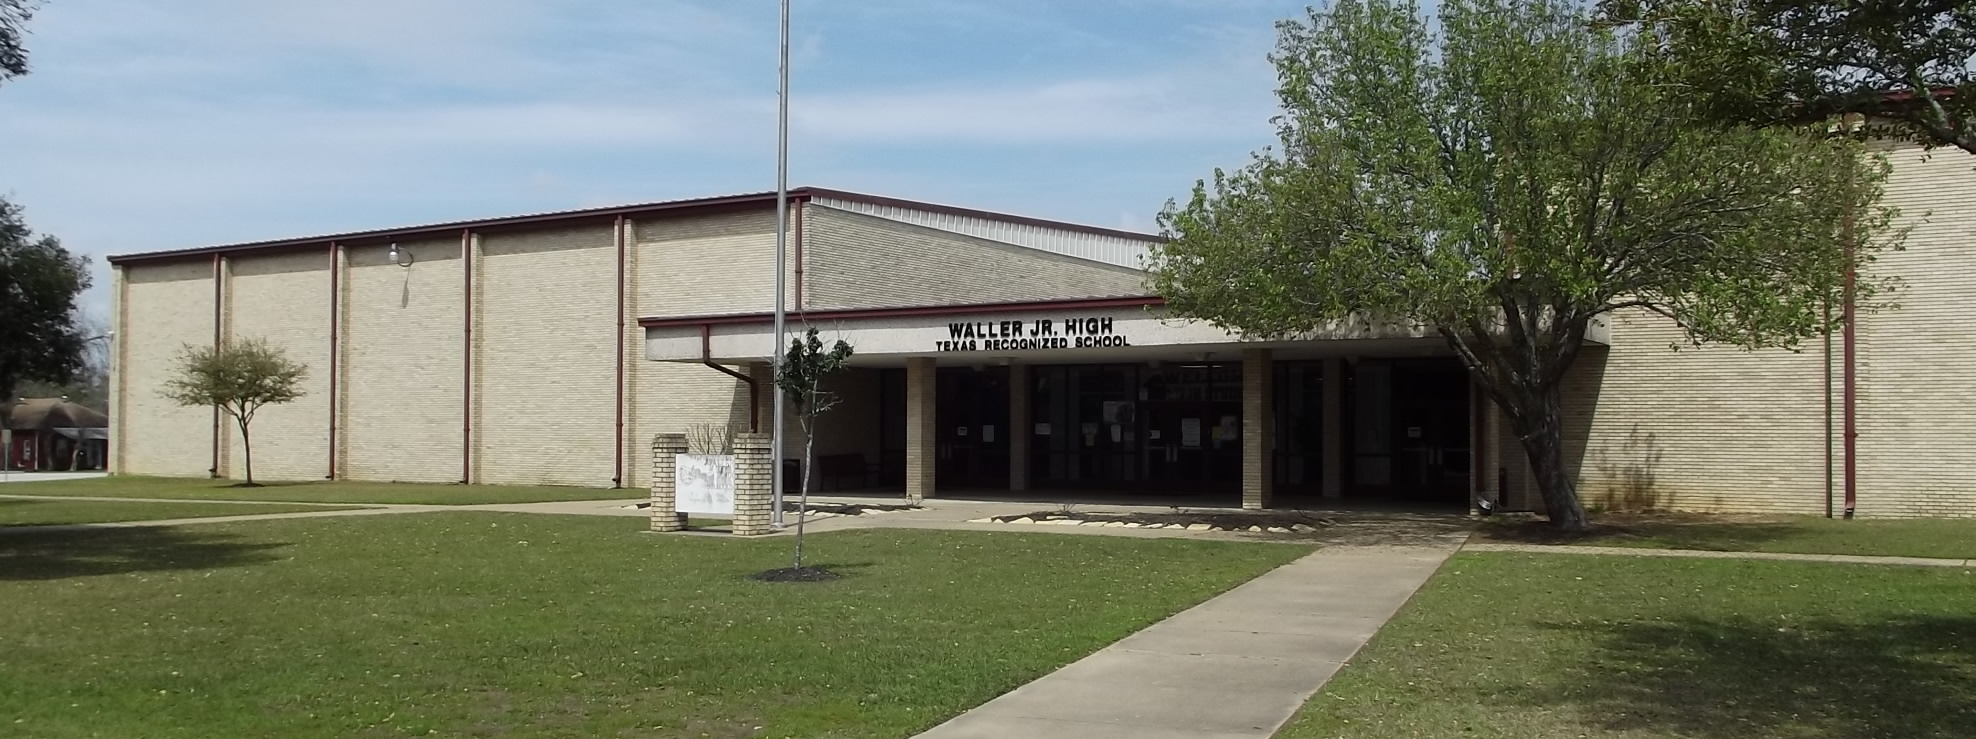 Waller Jr High